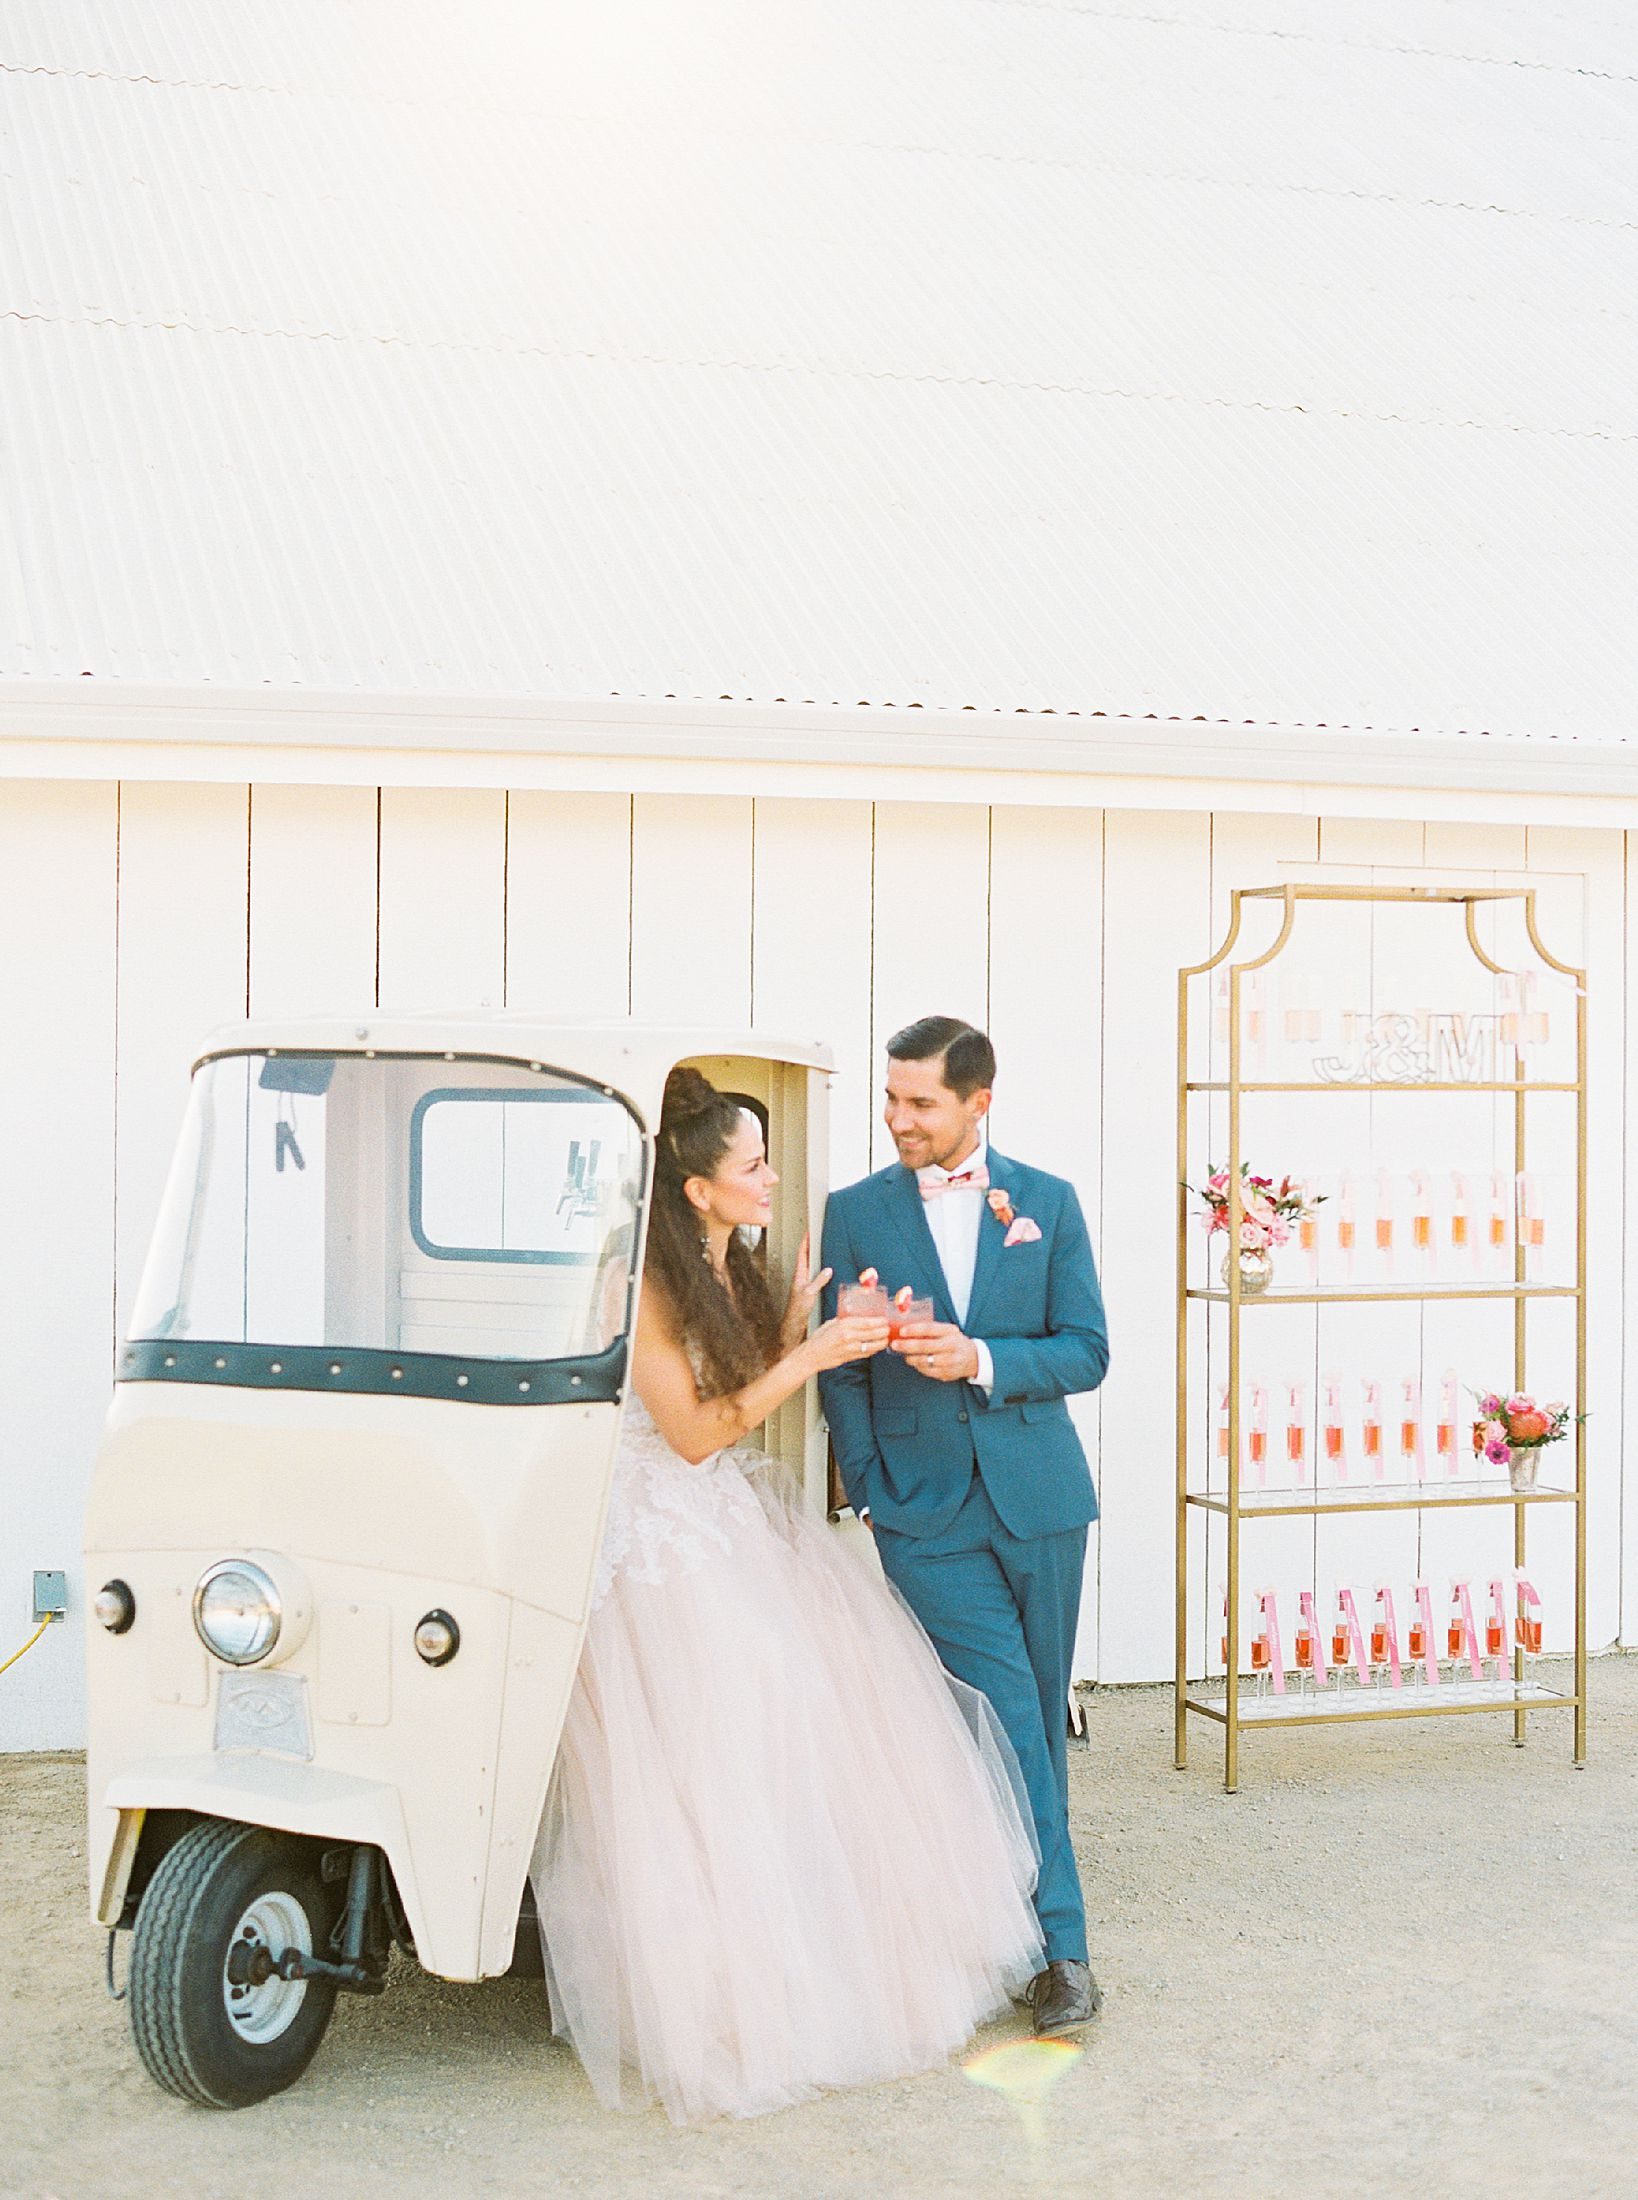 White Barn Edna Valley Wedding Inspiration - San Luis Obispo Wedding - Featured on Green Wedding Shoes - Ashley Baumgartner - FM Events SLO - SLO Wedding Photographer_0076.jpg